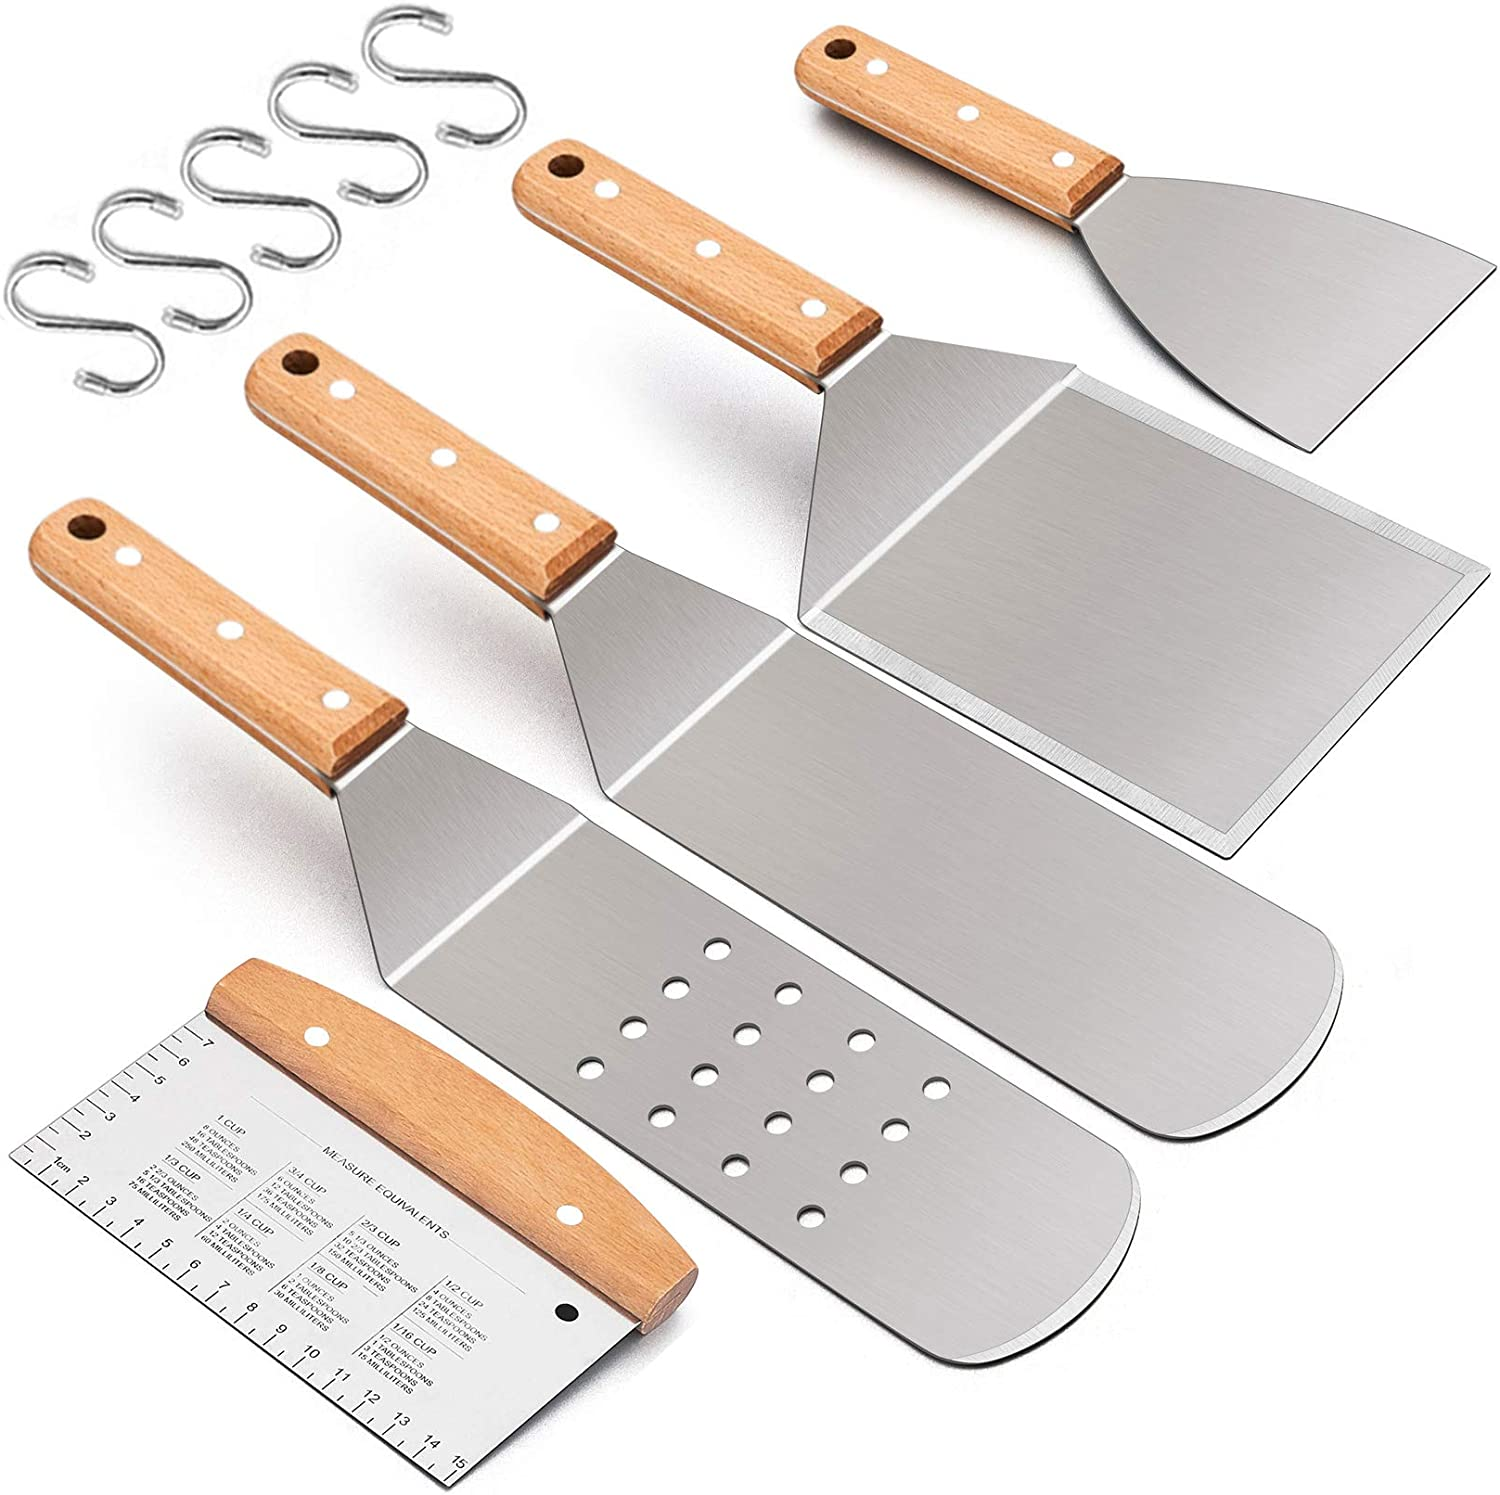 Leonyo 5PCS Griddle Accessories Set, Stainless Steel Grill Metal Turner Spatula - Heavy Duty Food Grade Hamburger Turner, Teppanyaki Pancake Burger Flipper for Flat Top Cast Iron BBQ Hibachi Cooking